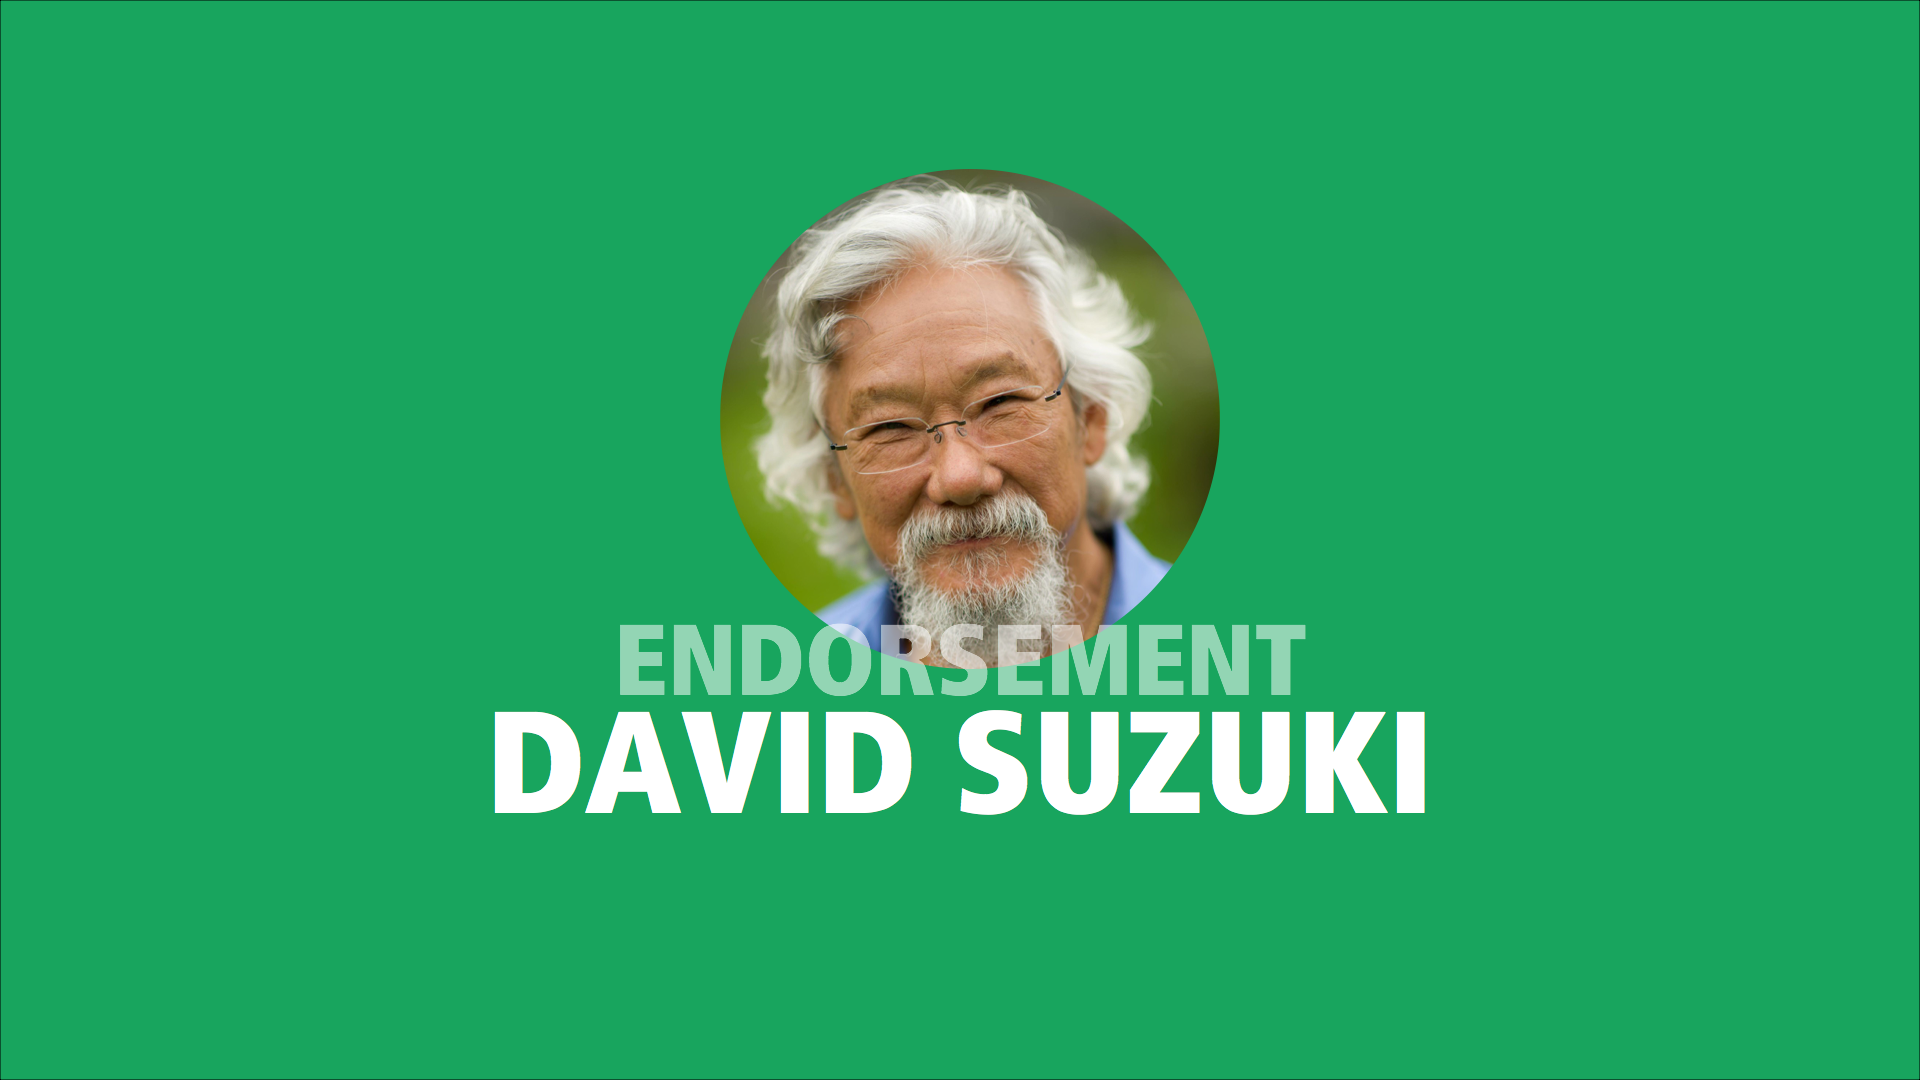 David Suzuki endorses Adam Olsen